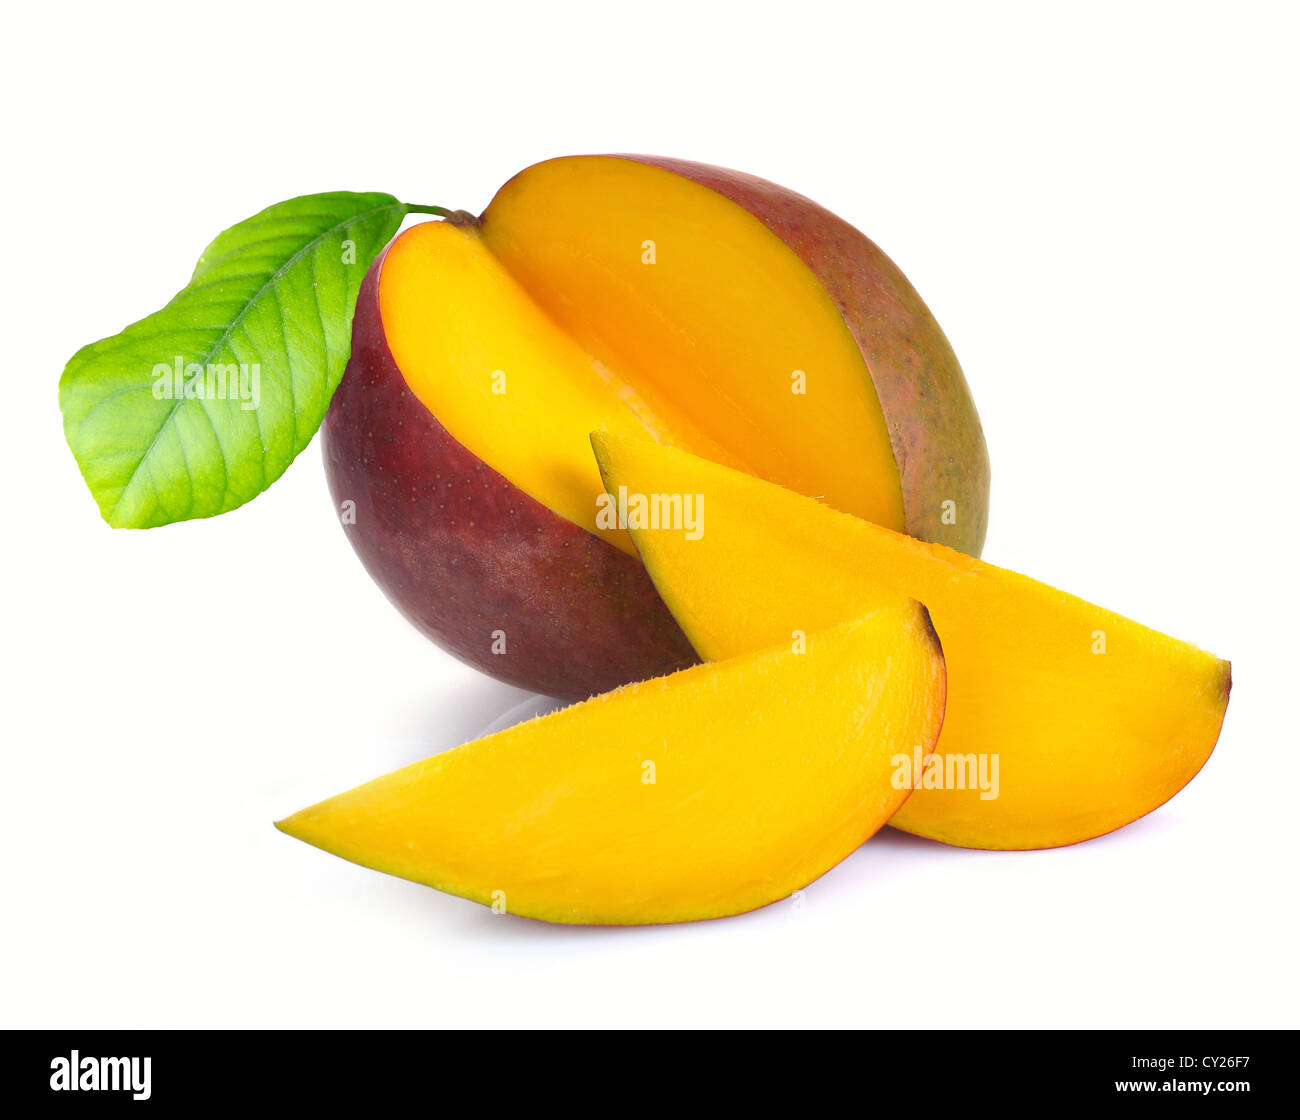 Mango with section on a white background - Stock Image